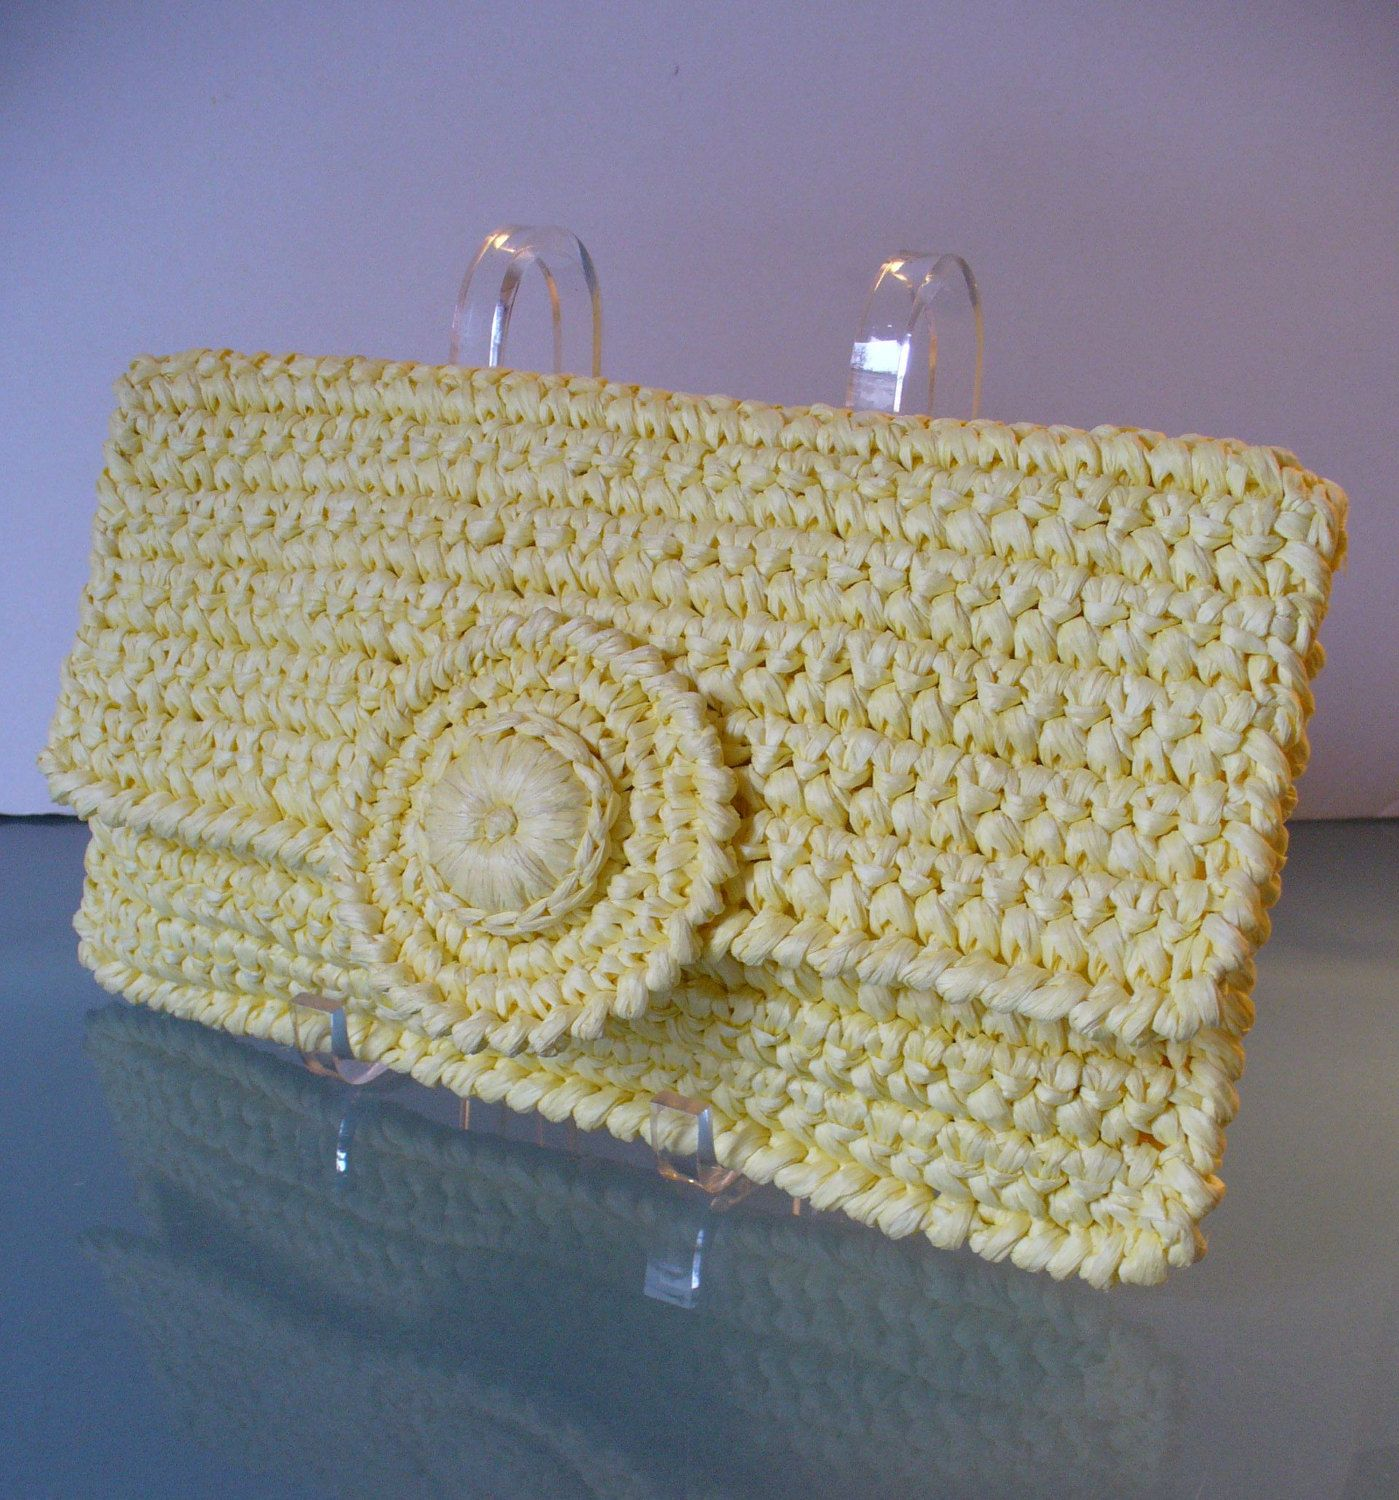 Made in italy large crochet raffia clutch bag by eurotrashitaly on made in italy large crochet raffia clutch bag by eurotrashitaly on etsy bankloansurffo Gallery